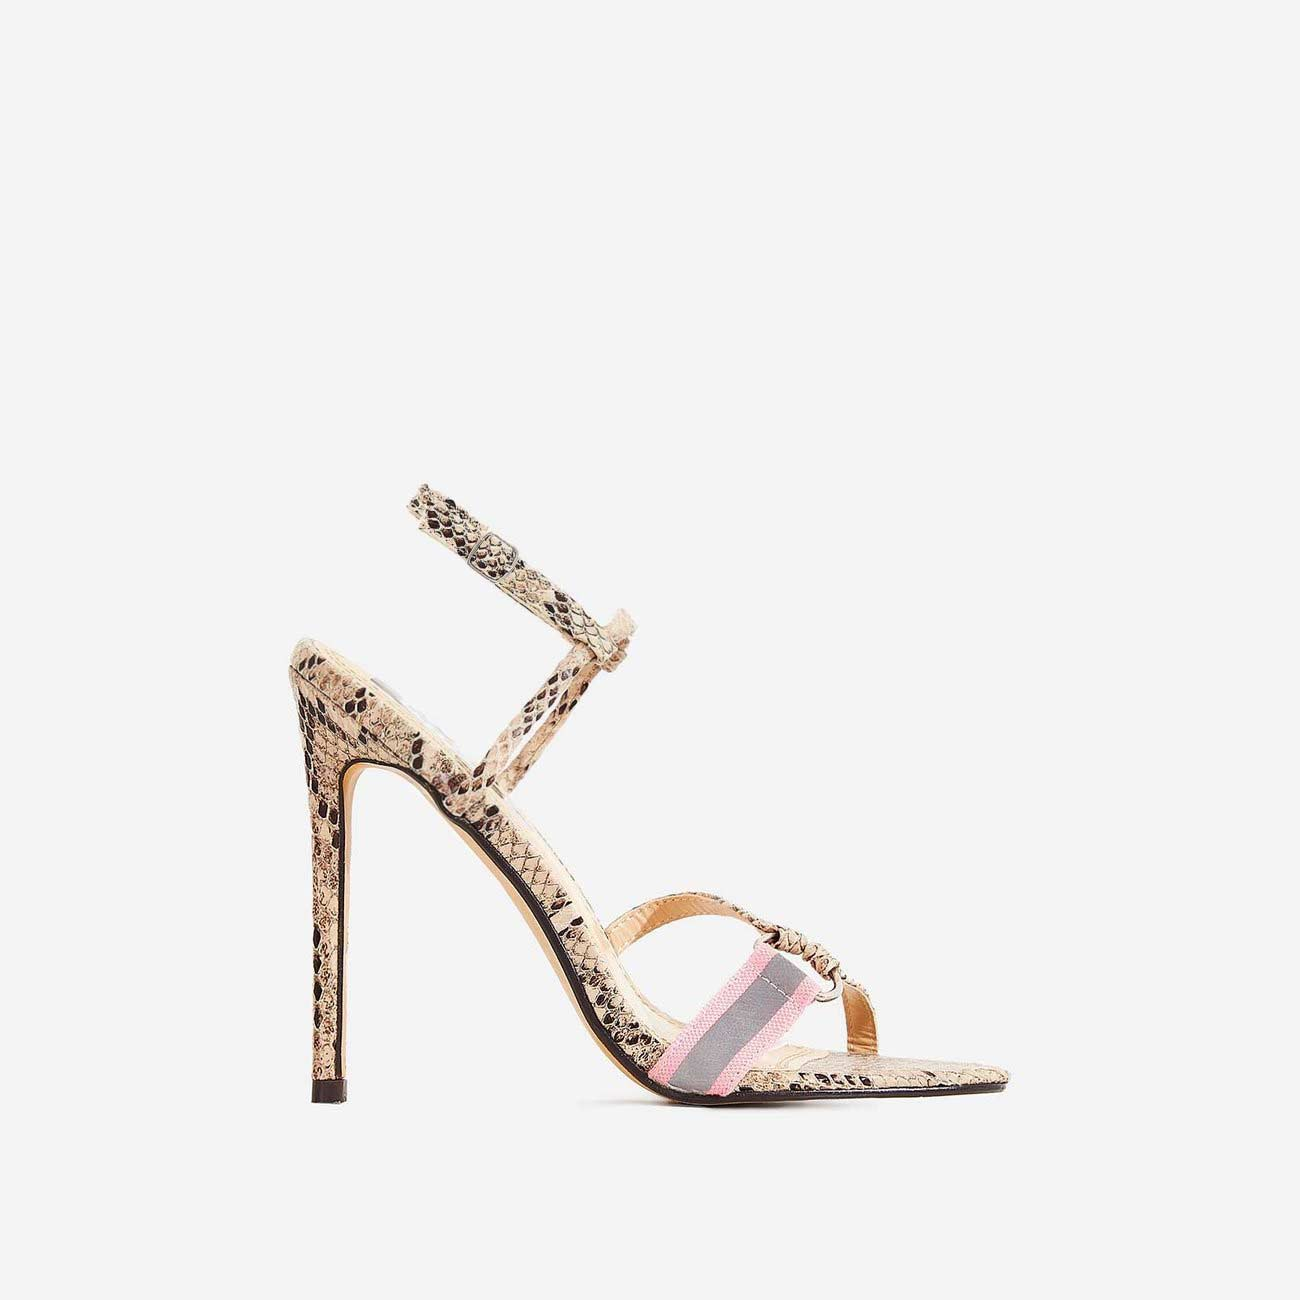 Tasmin Square Toe Barely There Heel In Nude Snake Print Faux Leather